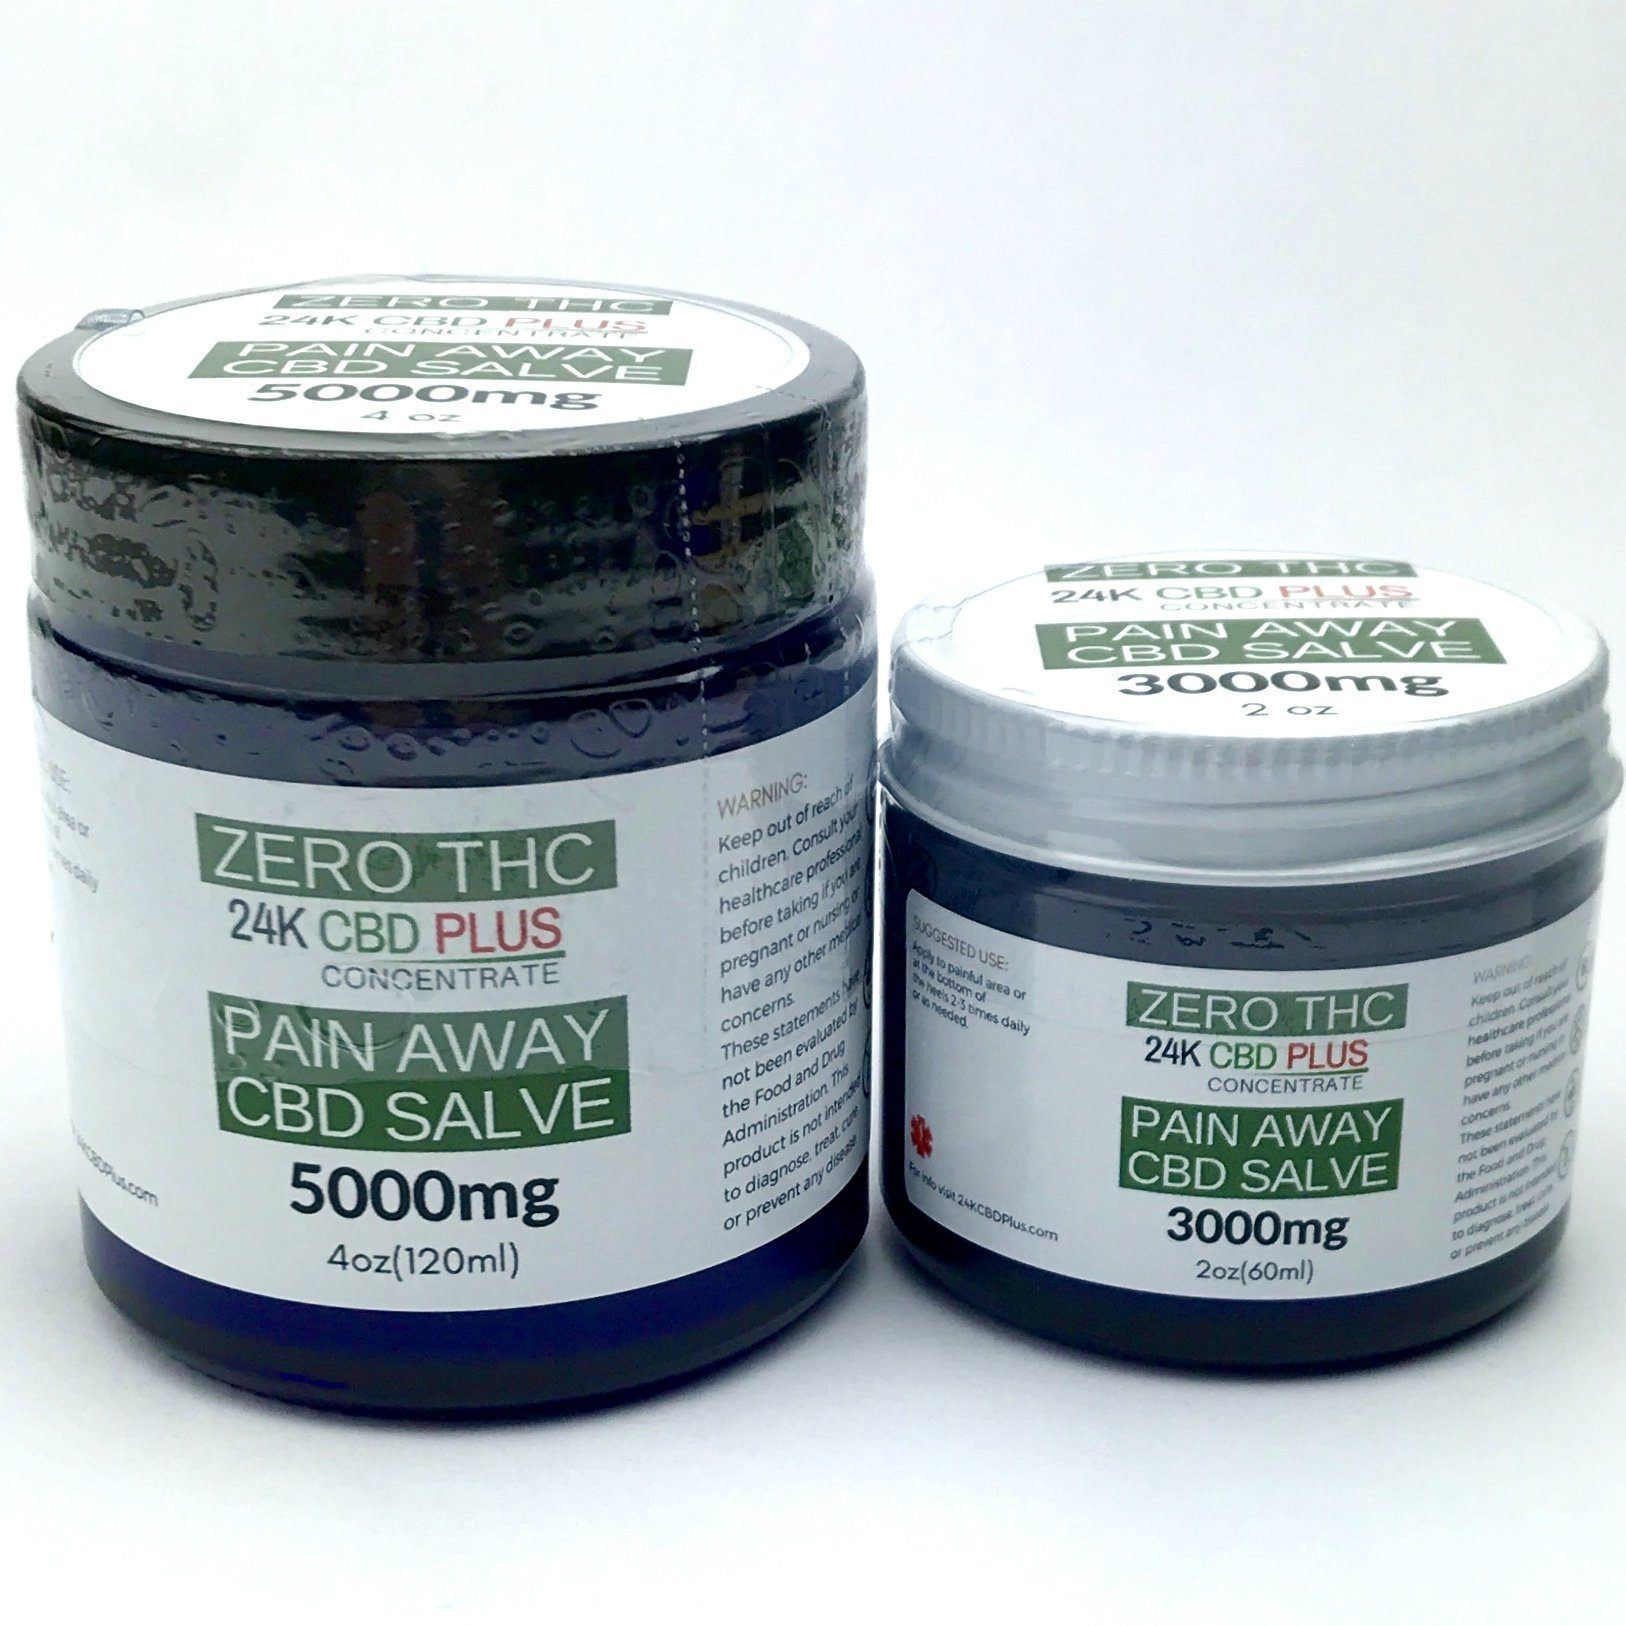 Pain Remedy - Powerful CBD OIL Salve + Vital Essential Nutrients Available In 500mg, 1000mg, 3000mg And 5000mg